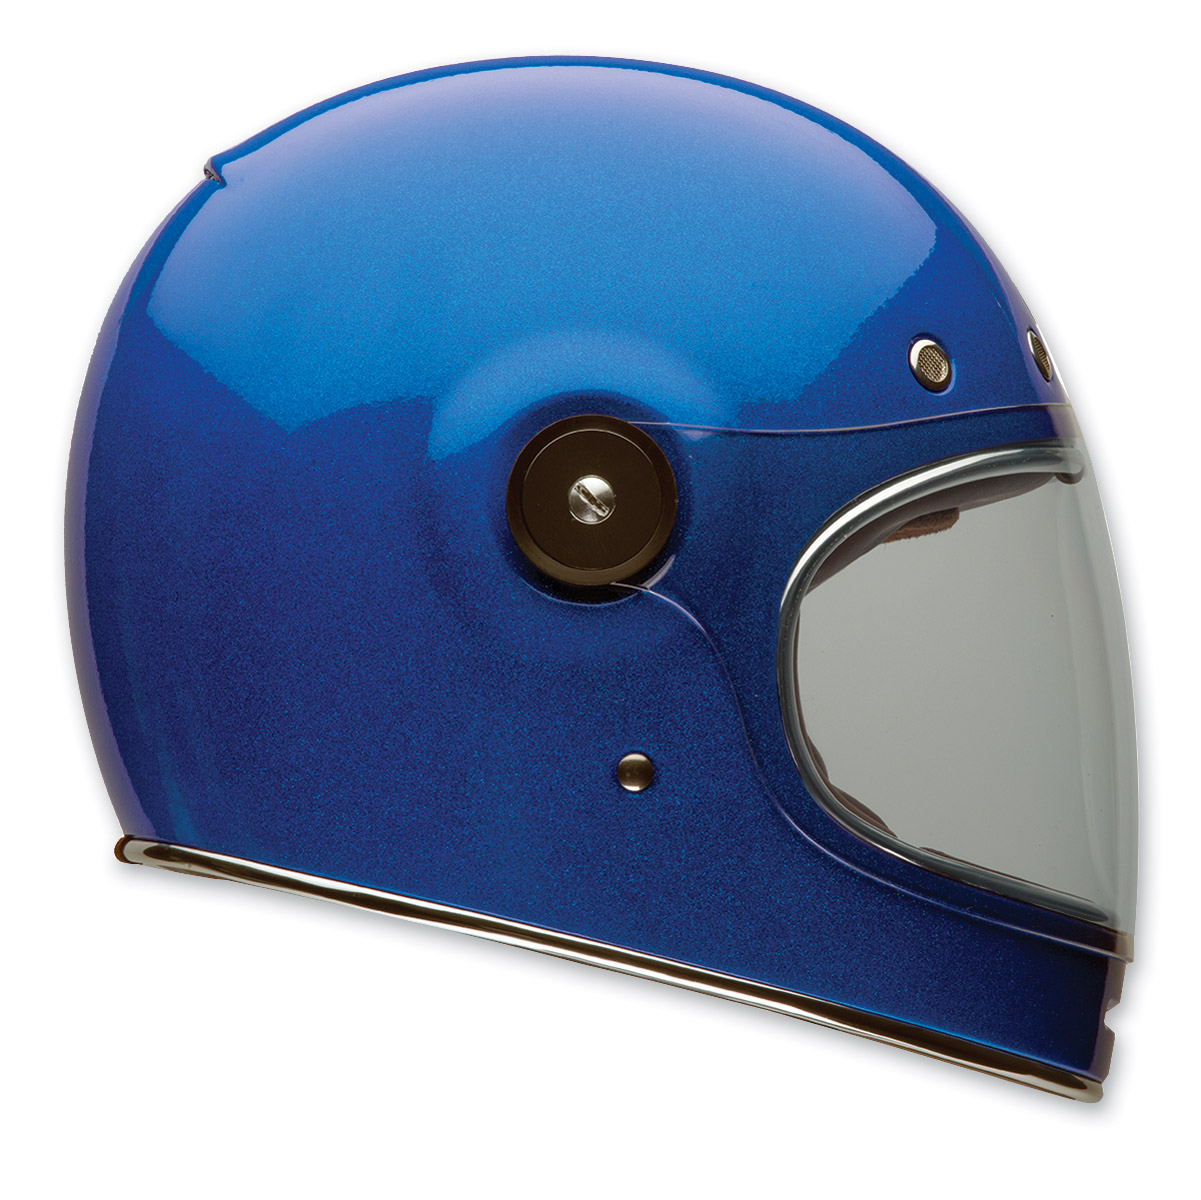 Bell Blue Flake Bullitt Full Face Helmet